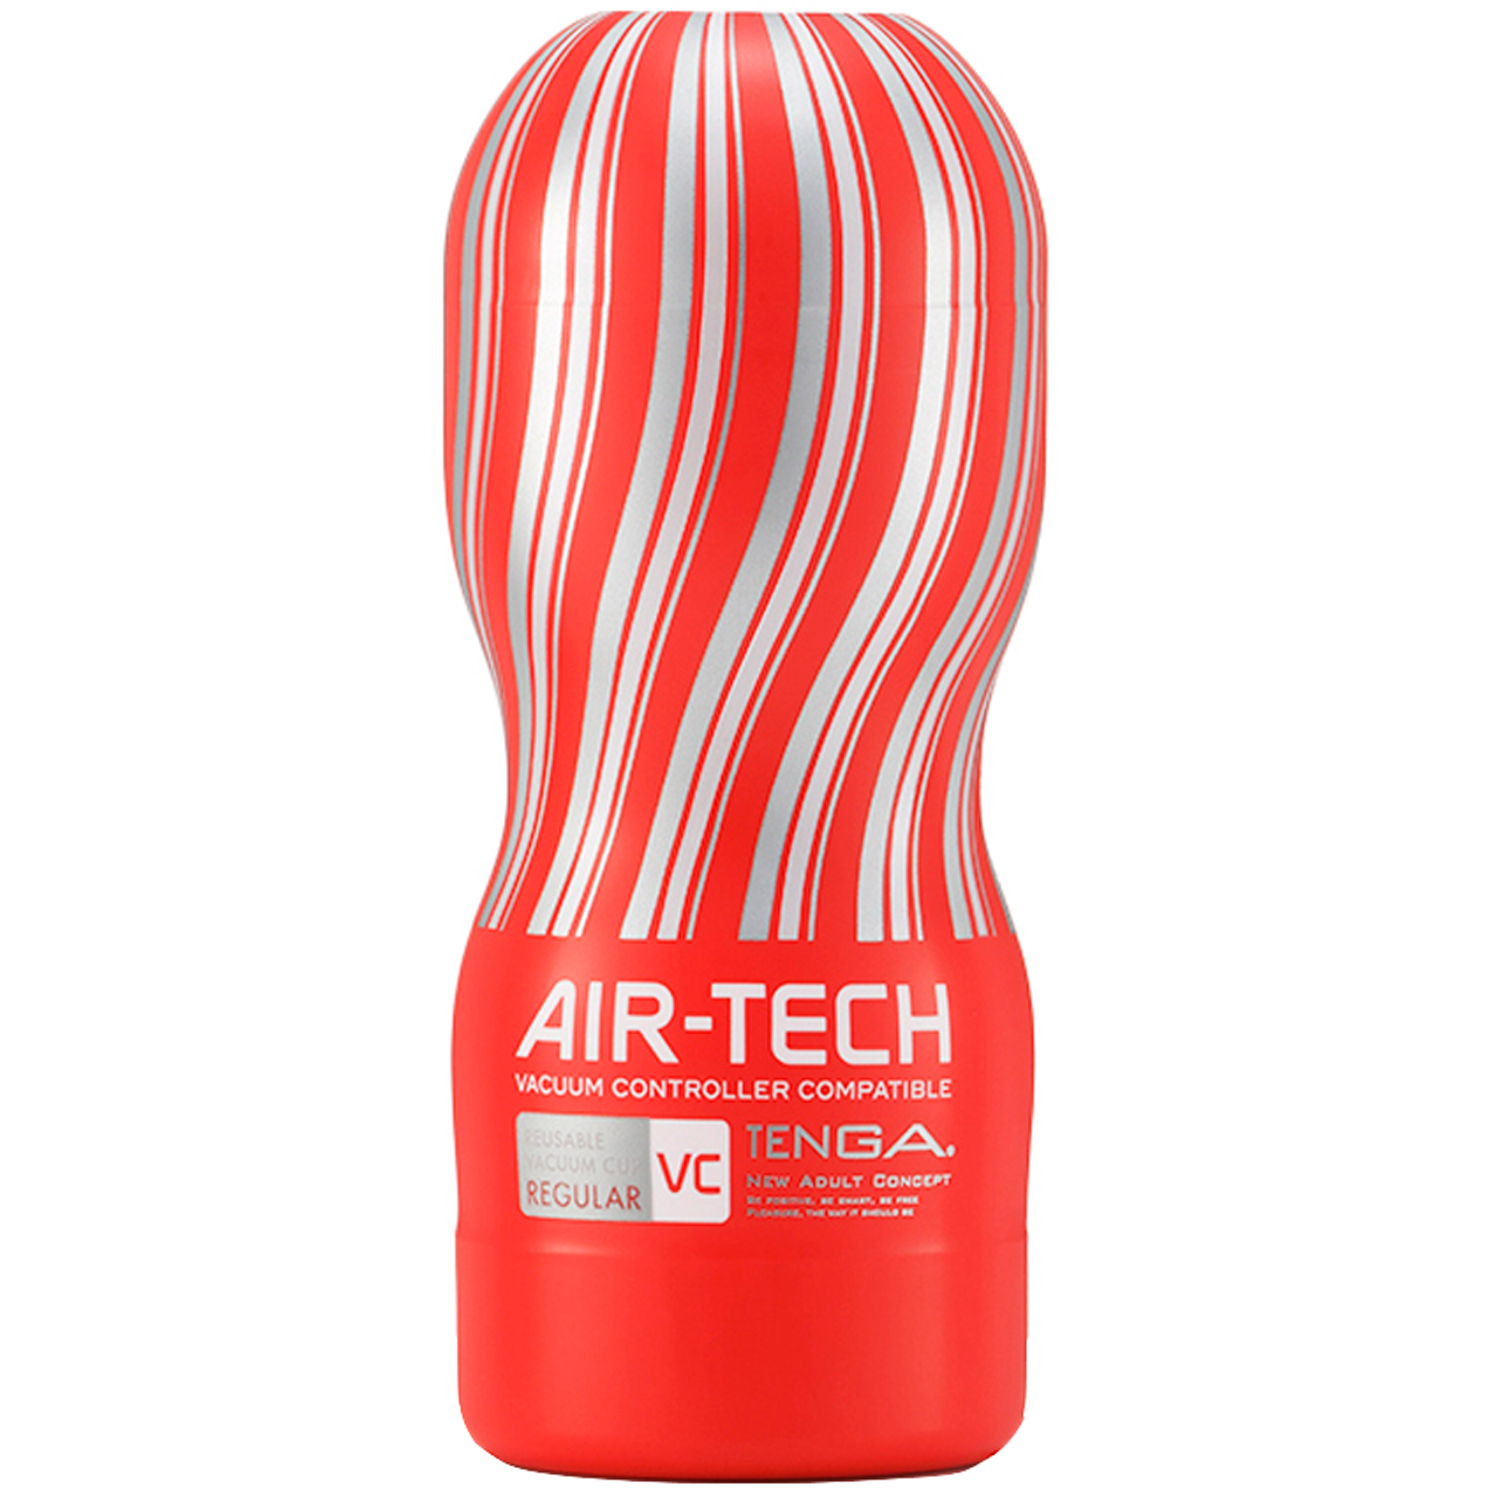 TENGA Air-Tech For Vacuum Controller Regular thumbnail